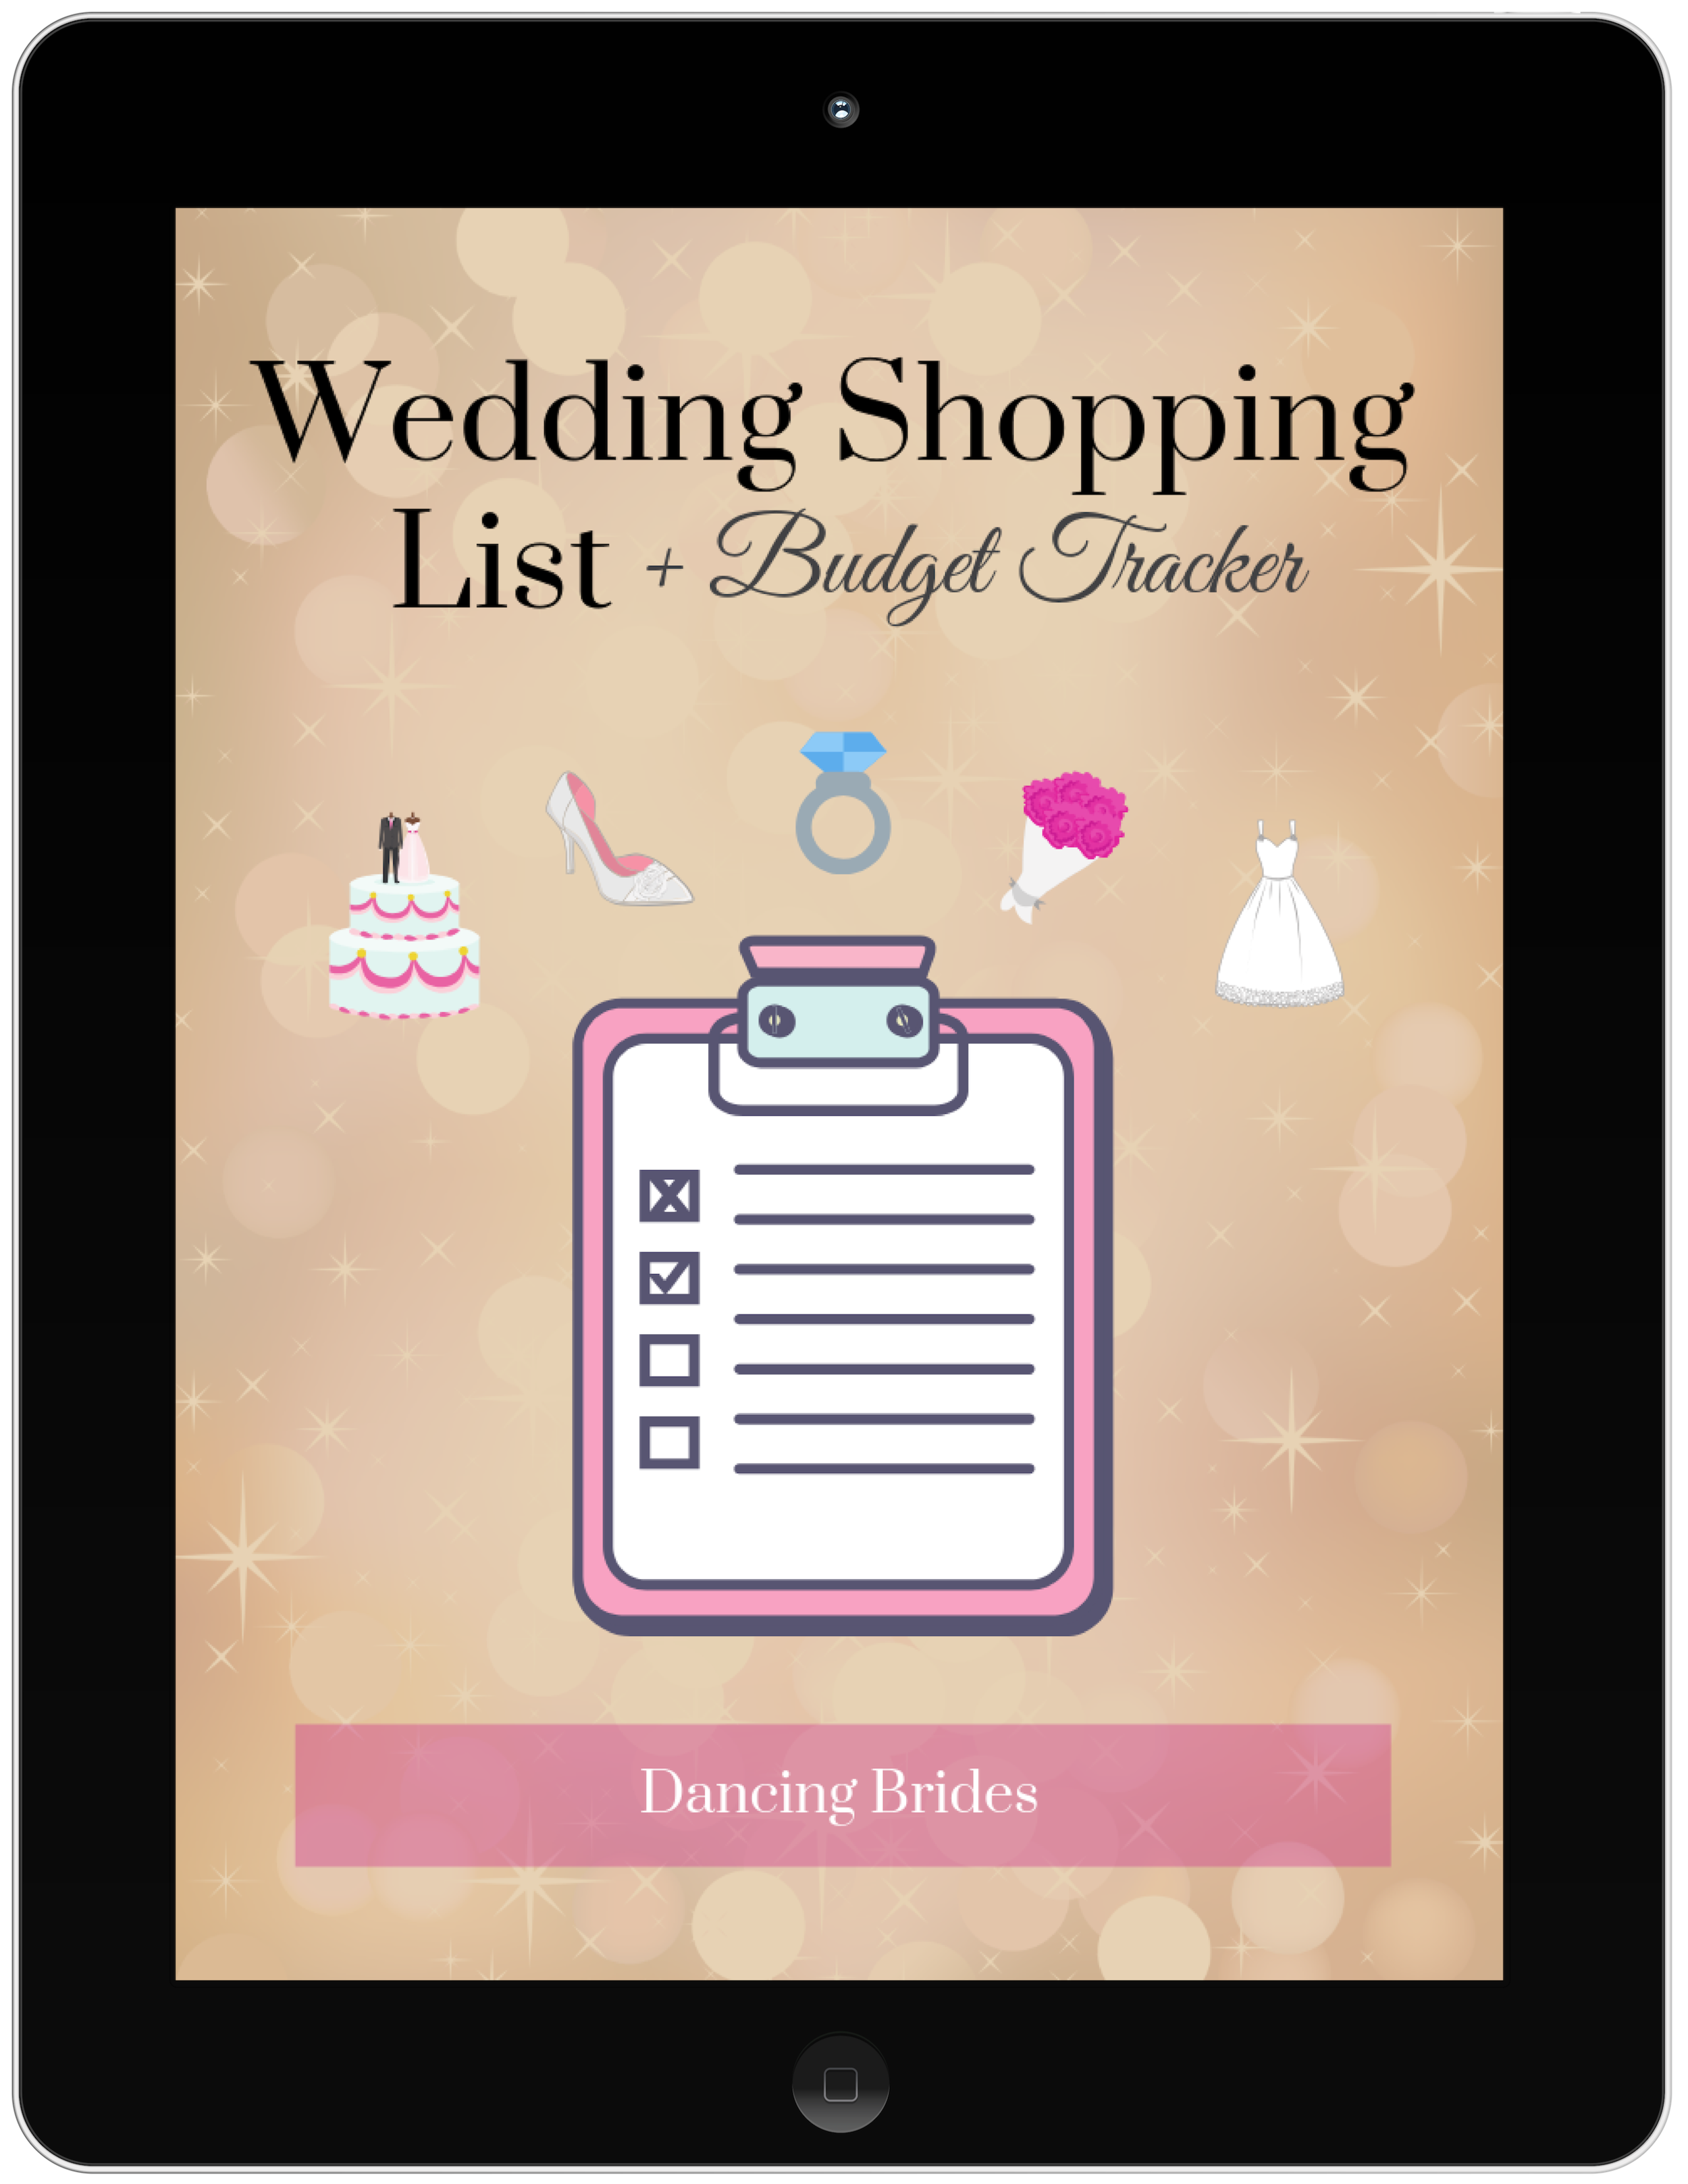 Get my FREE Wedding Shopping List and Budget Tracker so you can find everything you need for your big day and still stay within budget